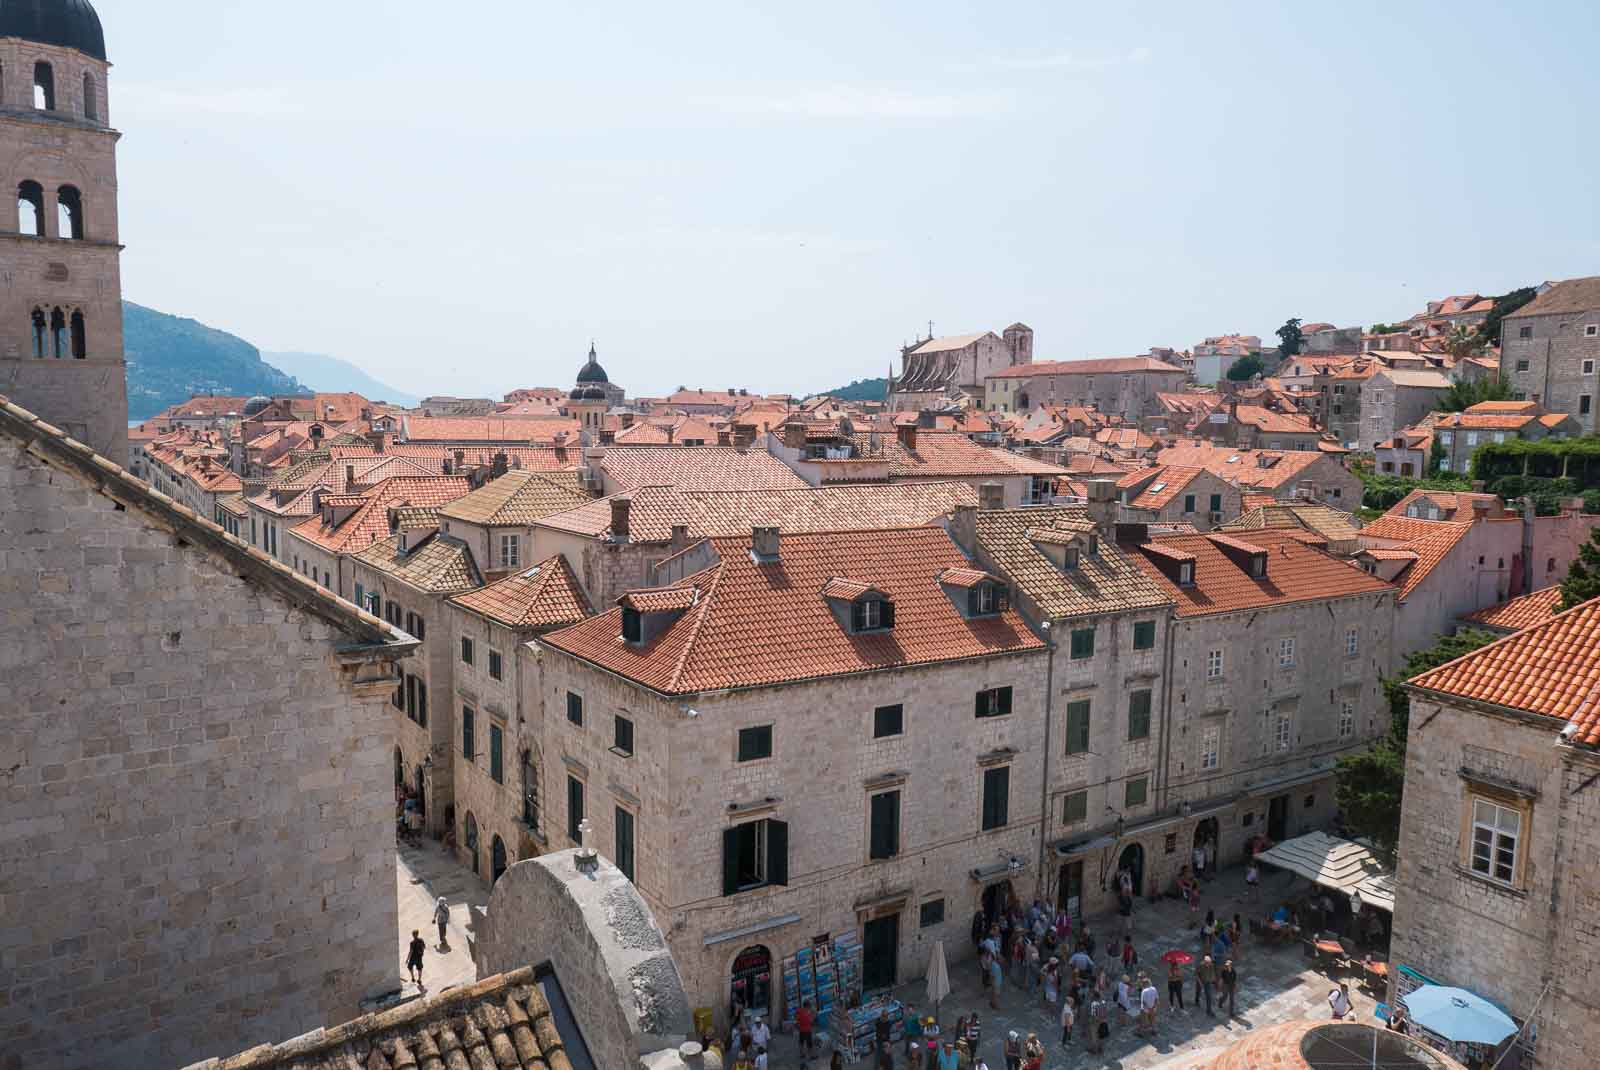 Views across Dubrovnik from the wall walk.